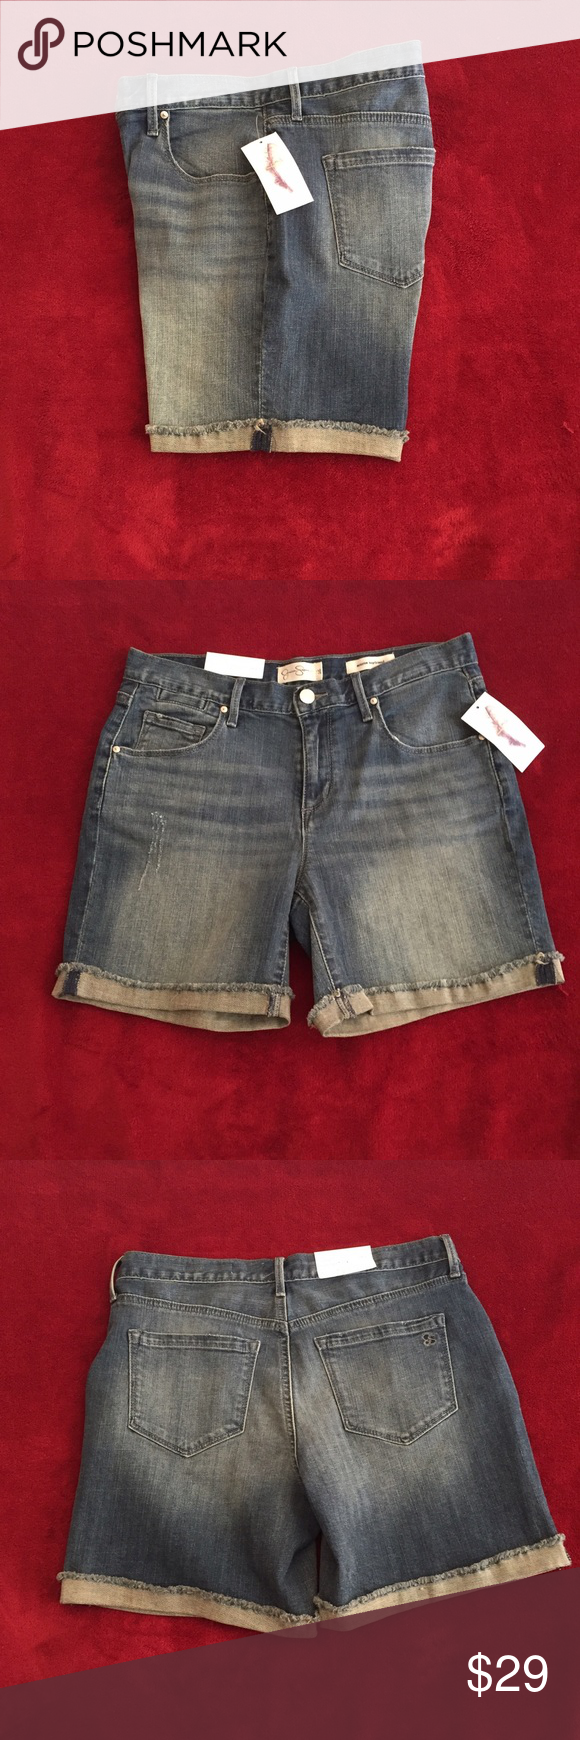 Jessica Simpson Monroe boyfriend shorts 26 Size 26 Monroe boyfriend shorts. Macy's Jessica Simpson MSRP$ 49 bundle and save 15 %  please comment if you have any questions. Jessica Simpson Shorts Jean Shorts